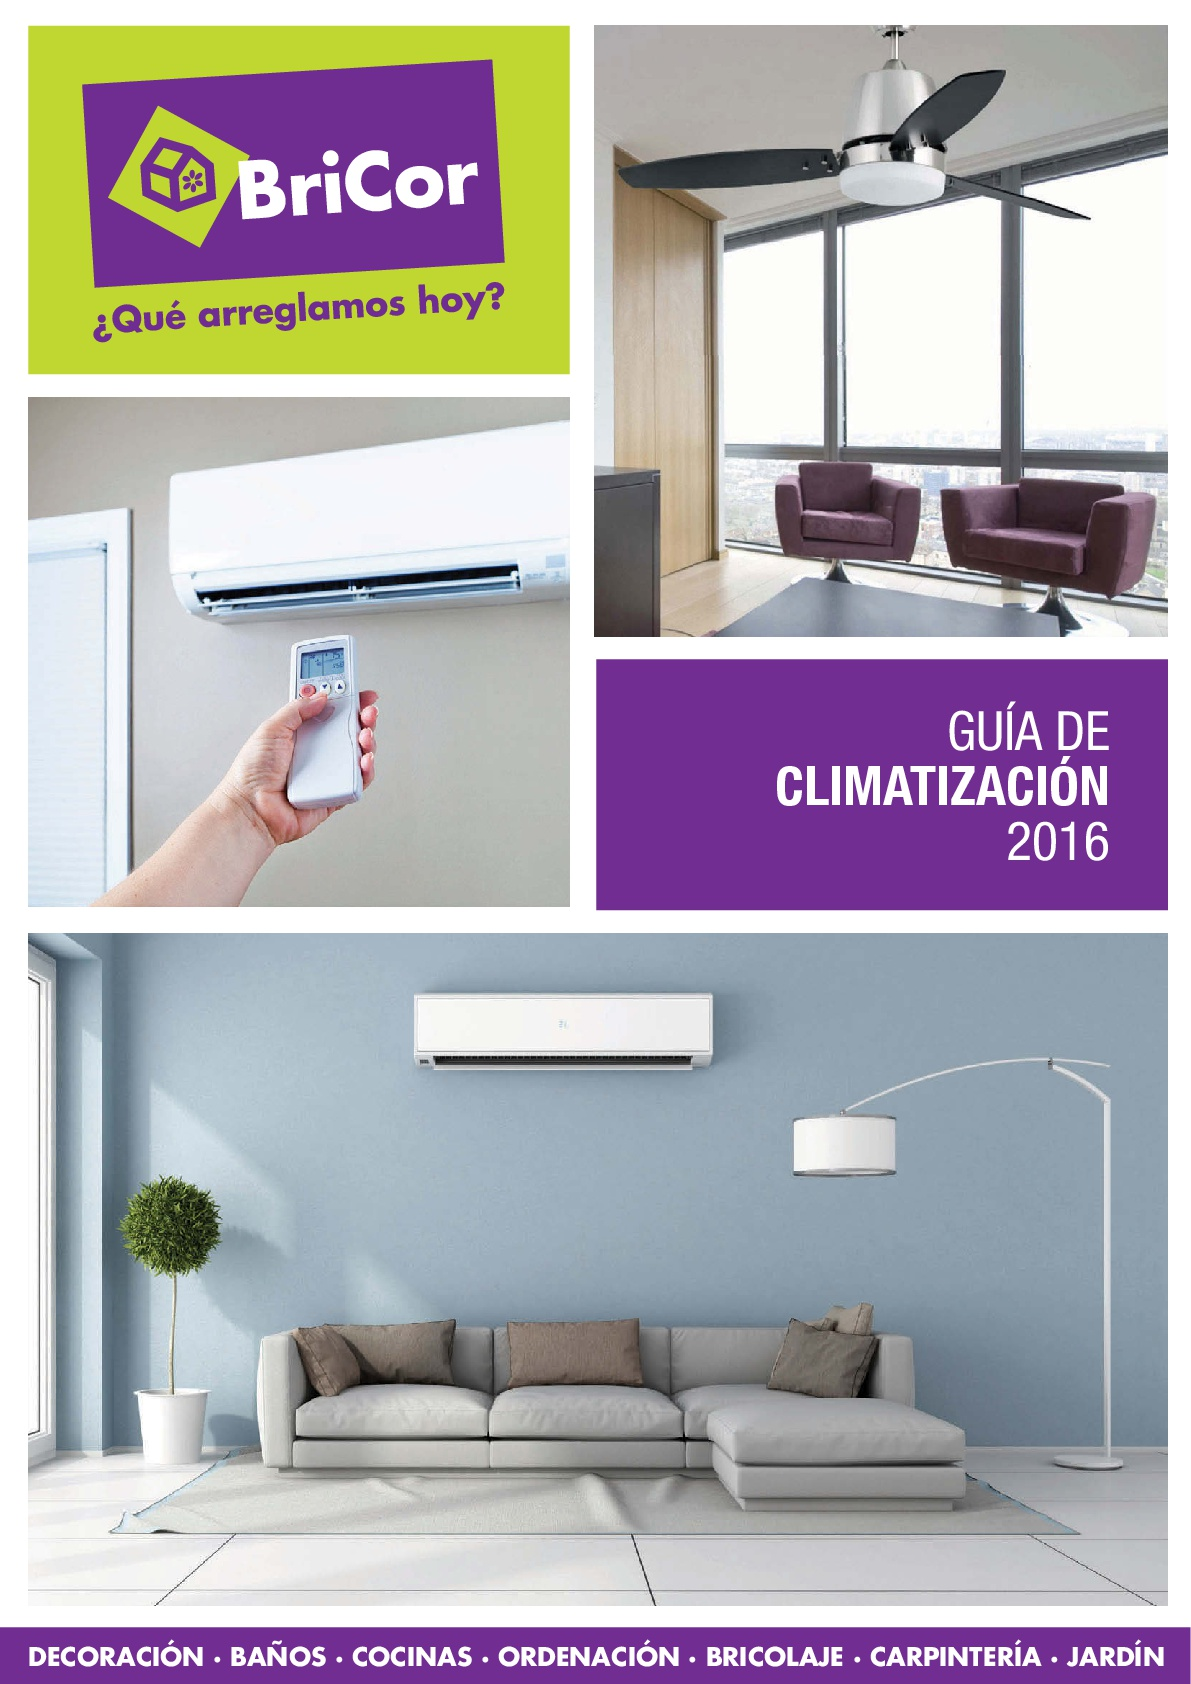 Bricor climatizacion1 for Bricor muebles bano